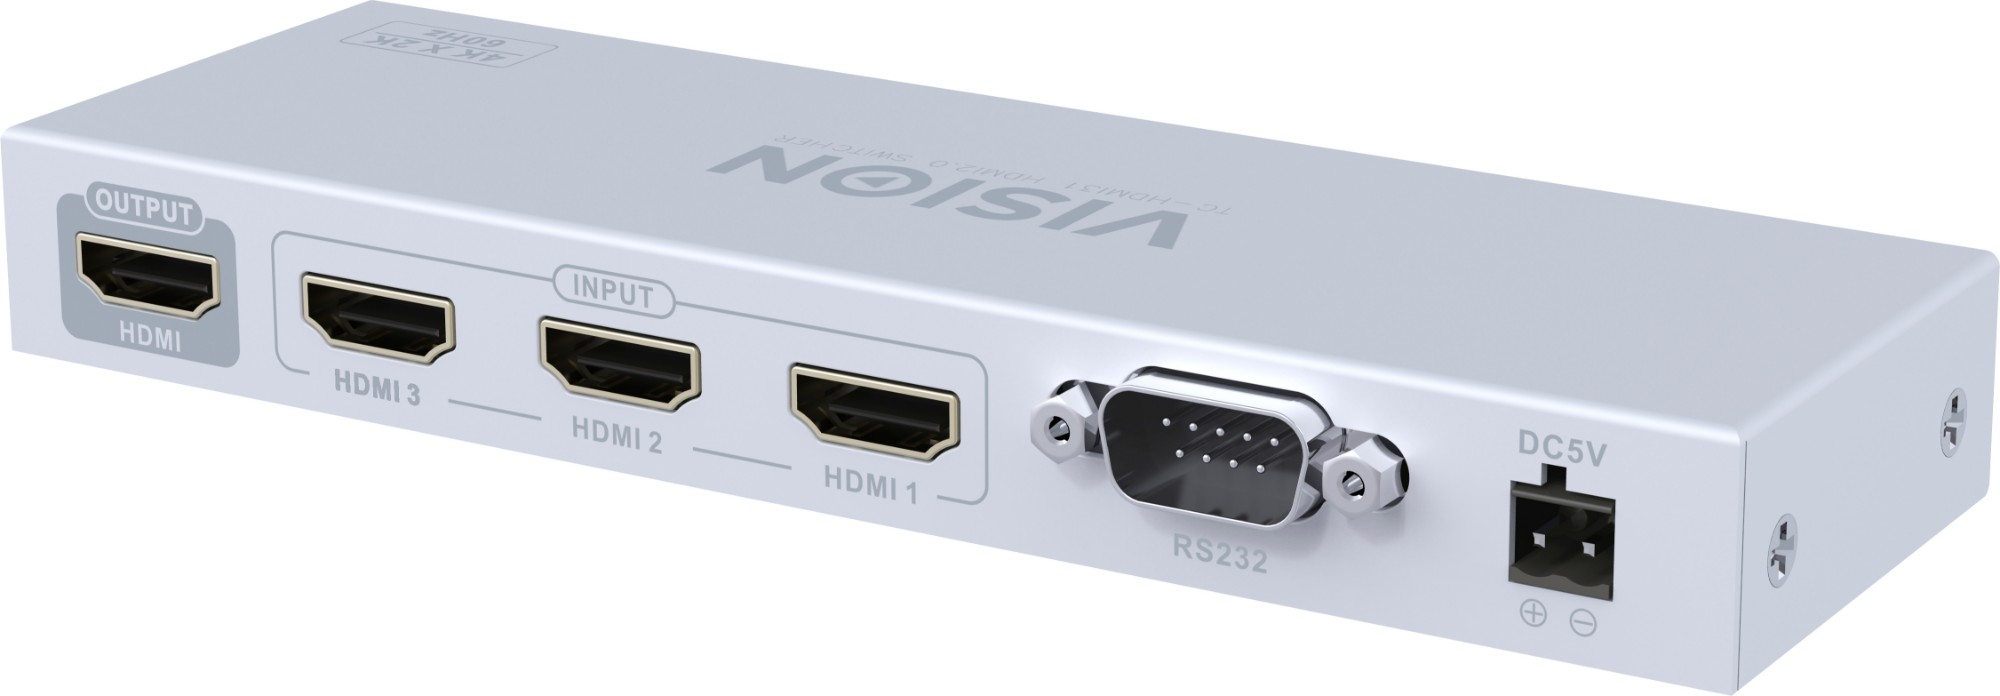 Vision TC-HDMI31 video switch HDMI